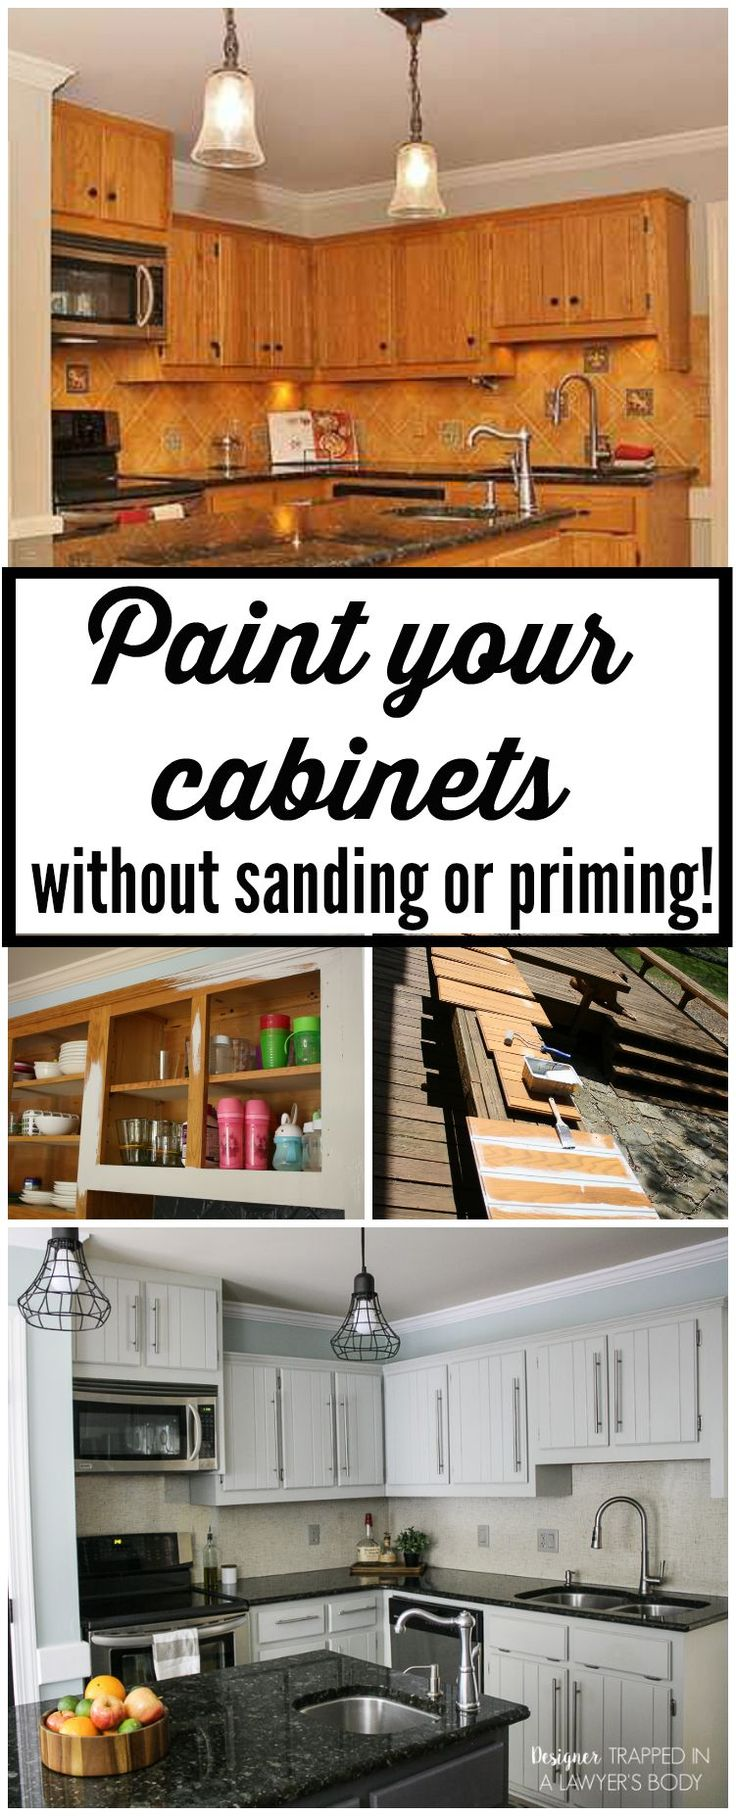 Best Kitchen Gallery: 206 Best Kitchen Images On Pinterest Home Ideas Kitchens And Homes of Behr Paint For Kitchen Cabinets No Sanding on rachelxblog.com